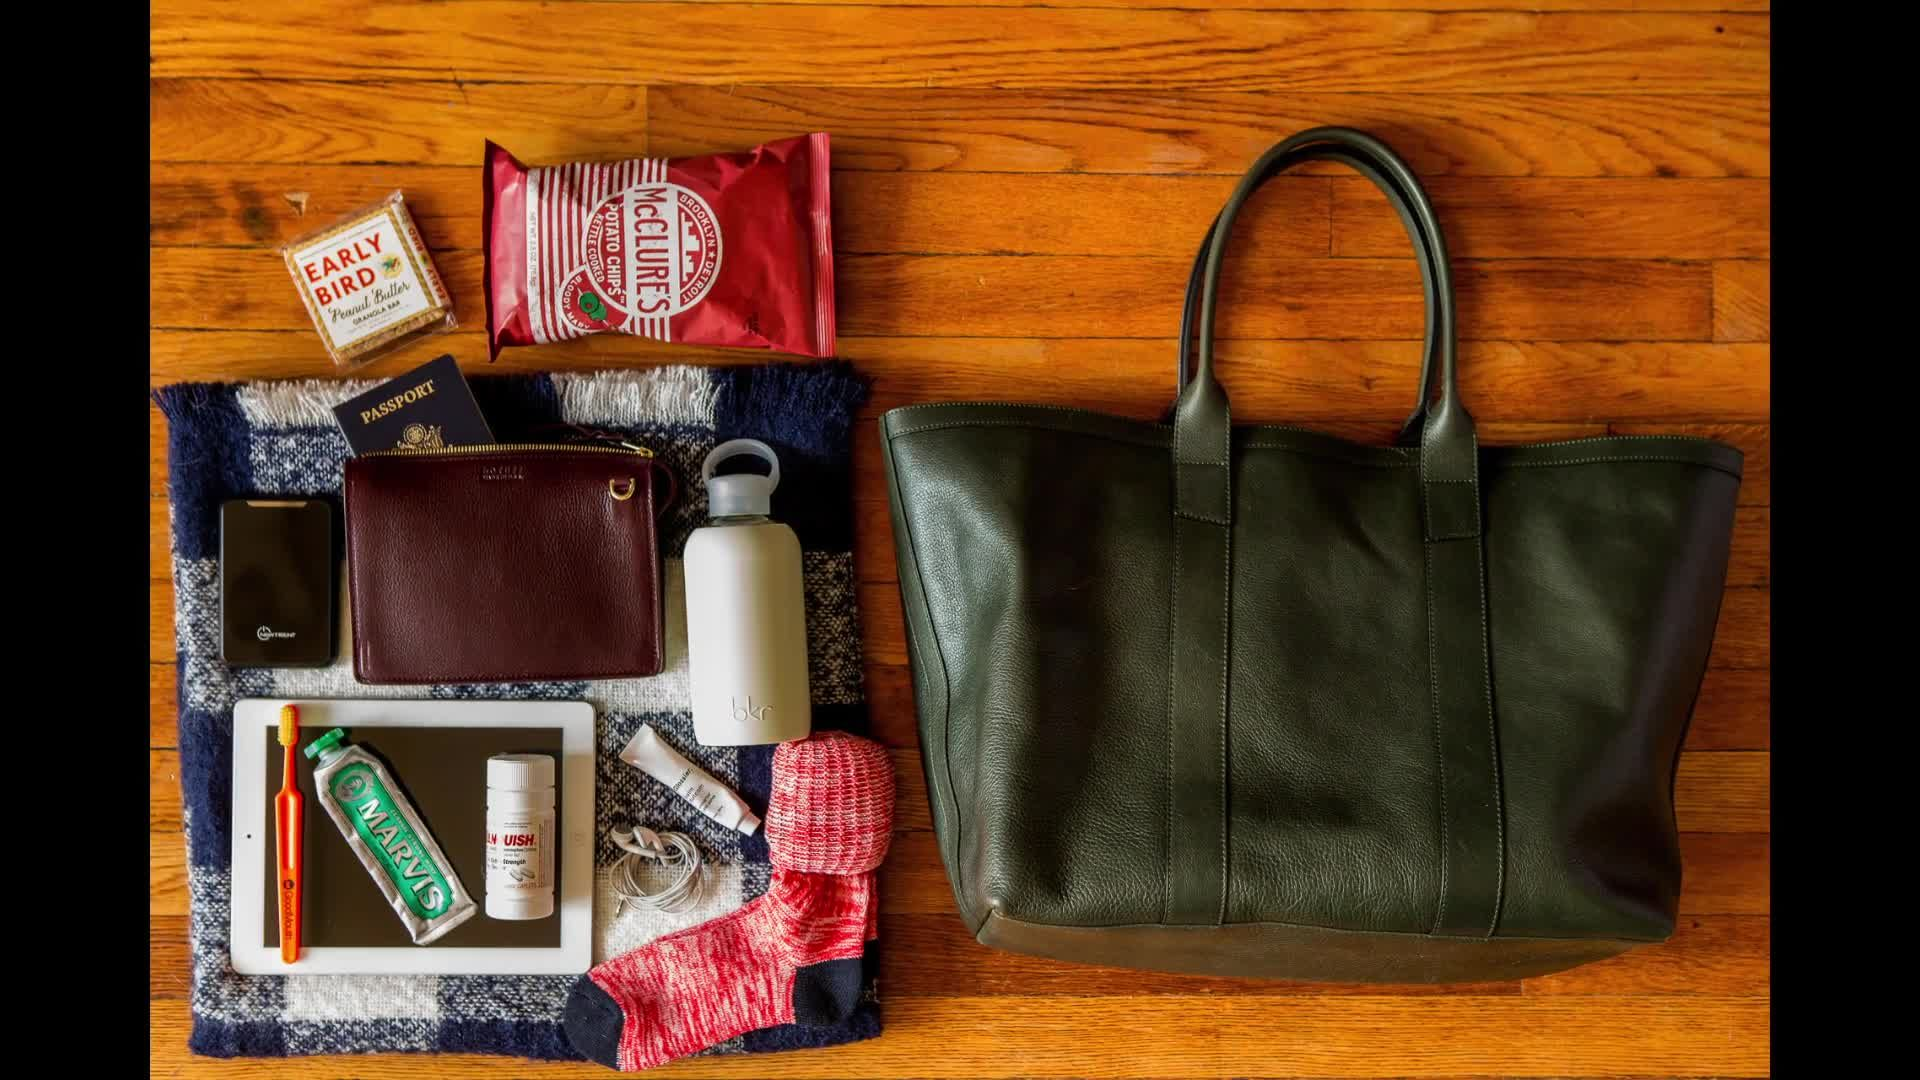 How I Pack: The Right Way to Pack a Carry-On Bag